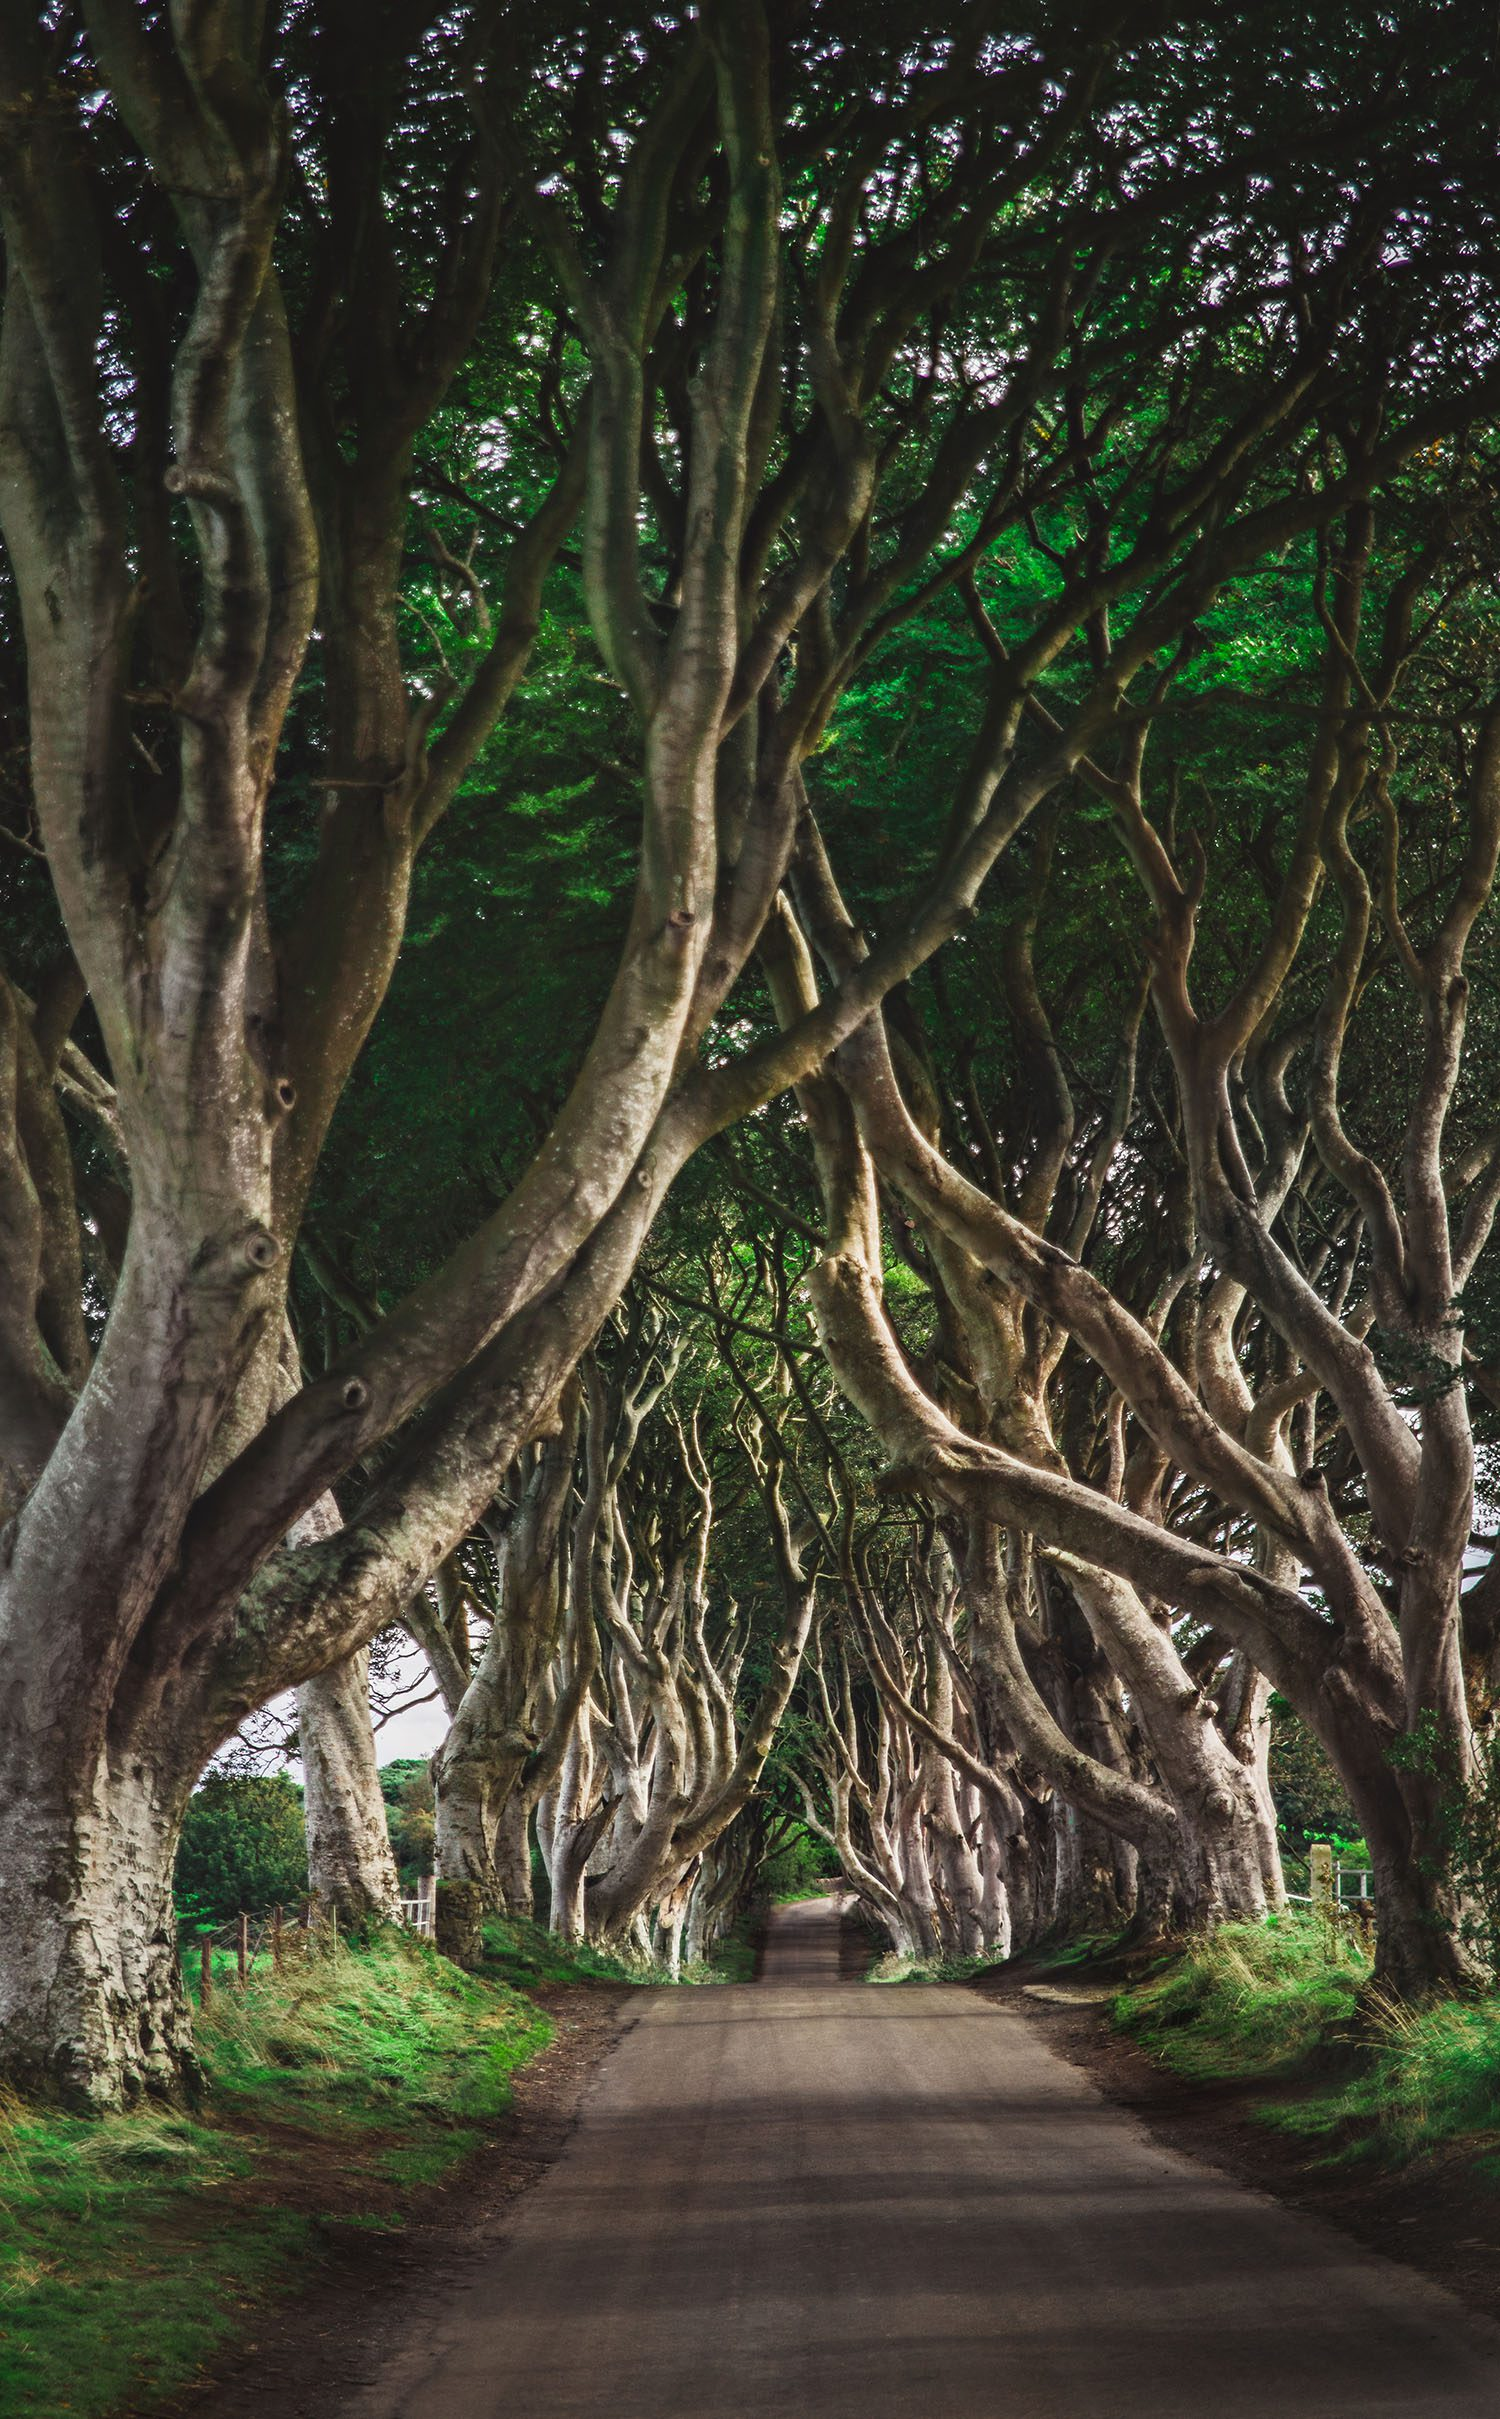 The Stunning The Dark Hedges - Game of Thrones Location in Northern Ireland